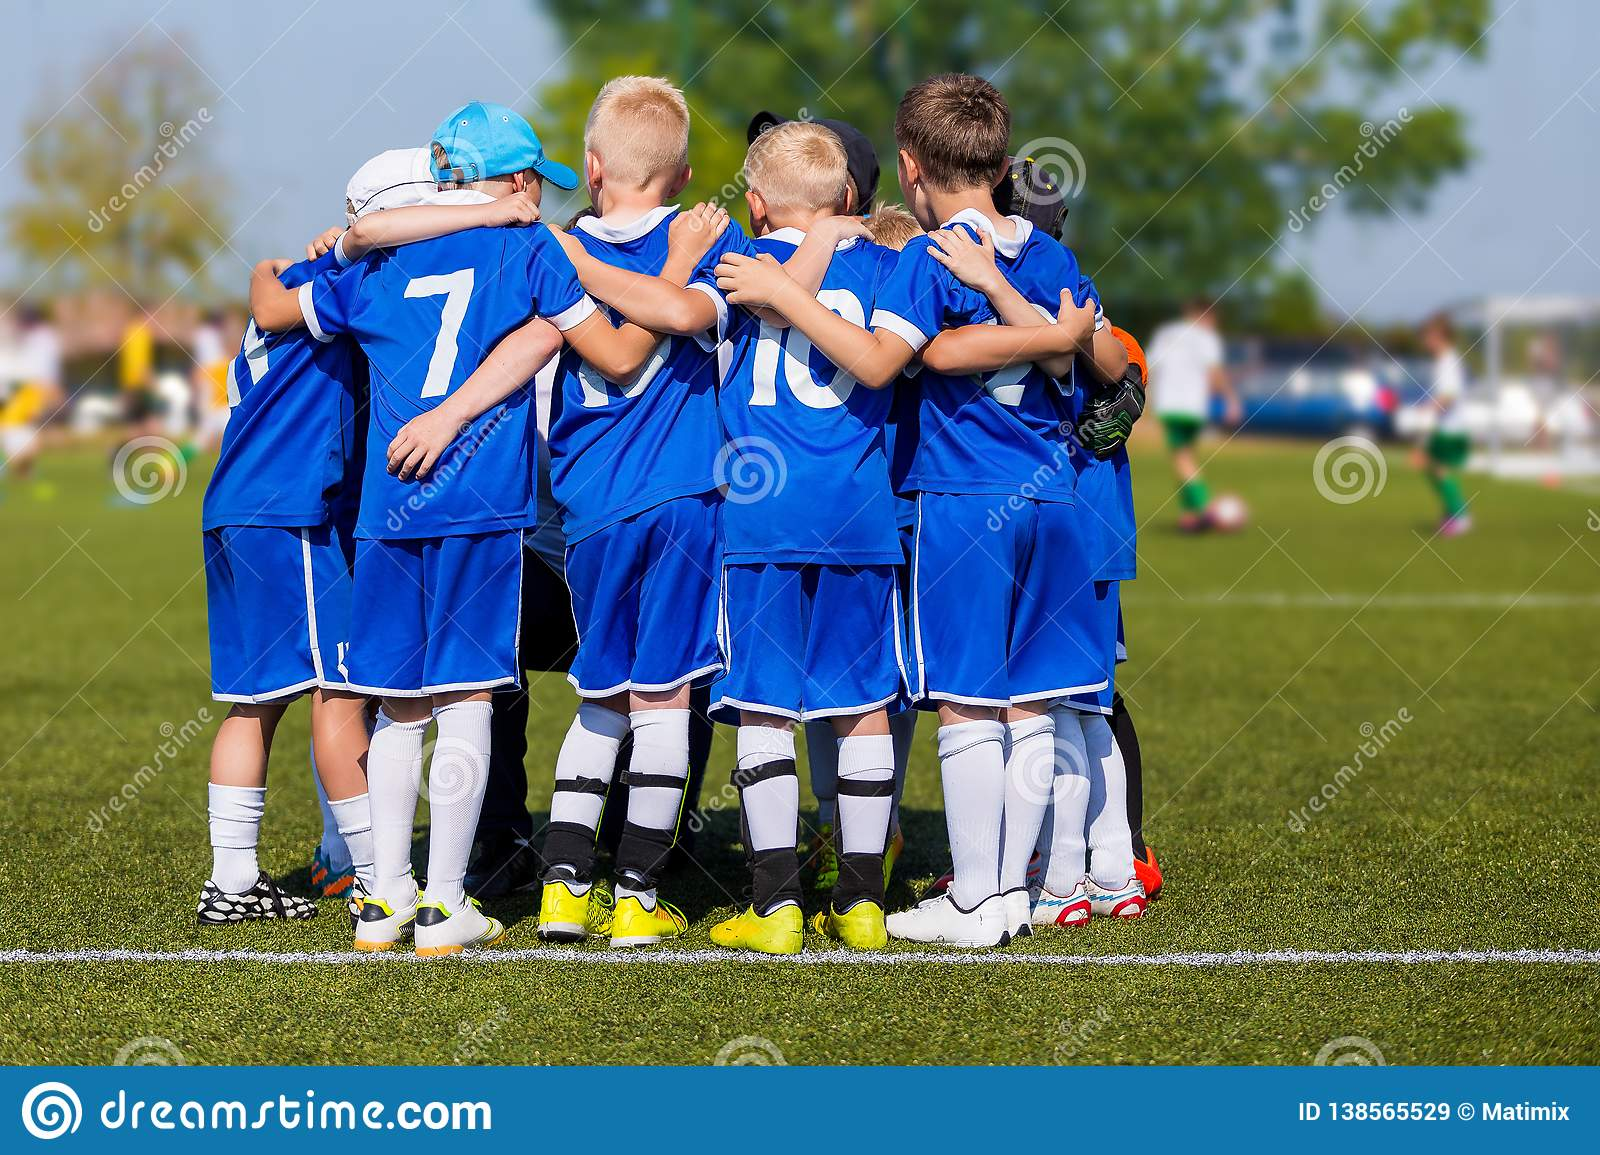 Kids Sport Team Gathering. Children Play Sports. Boys in Sports Jersey Uniforms Having Shout Team